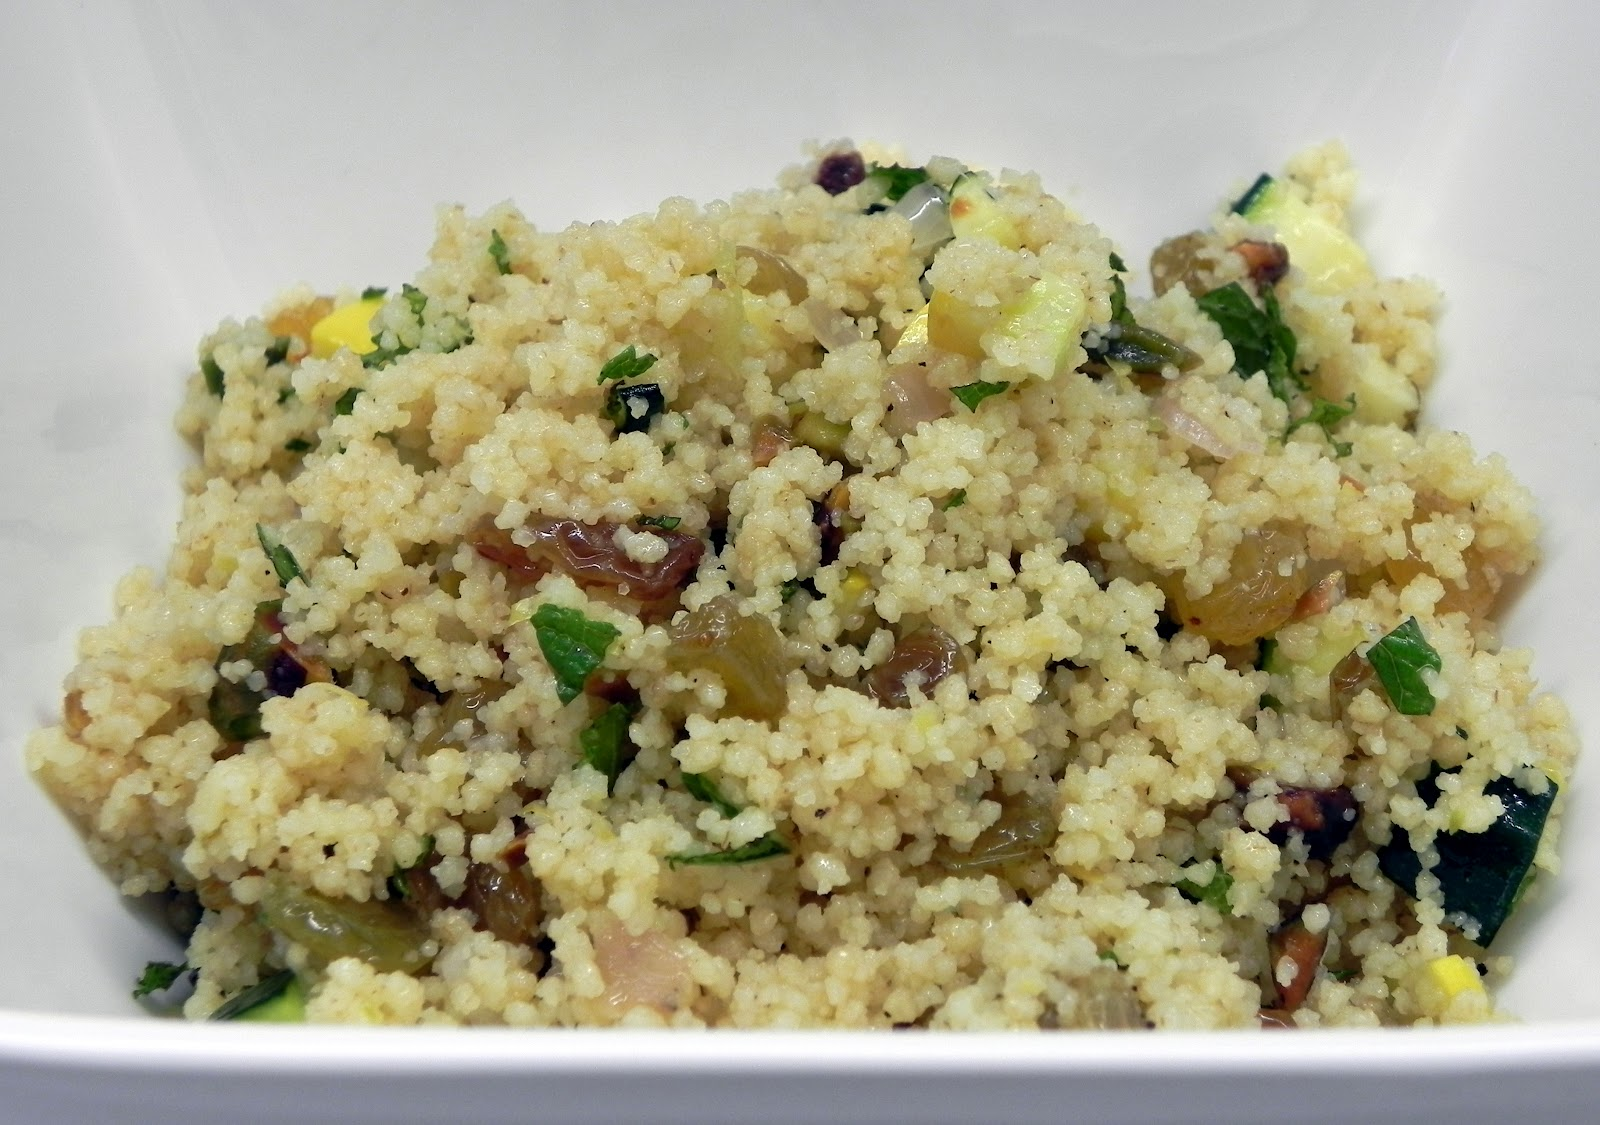 ... Kitchen: COUSCOUS WITH SQUASH, GOLDEN RAISINS, PISTACHIOS AND MINT